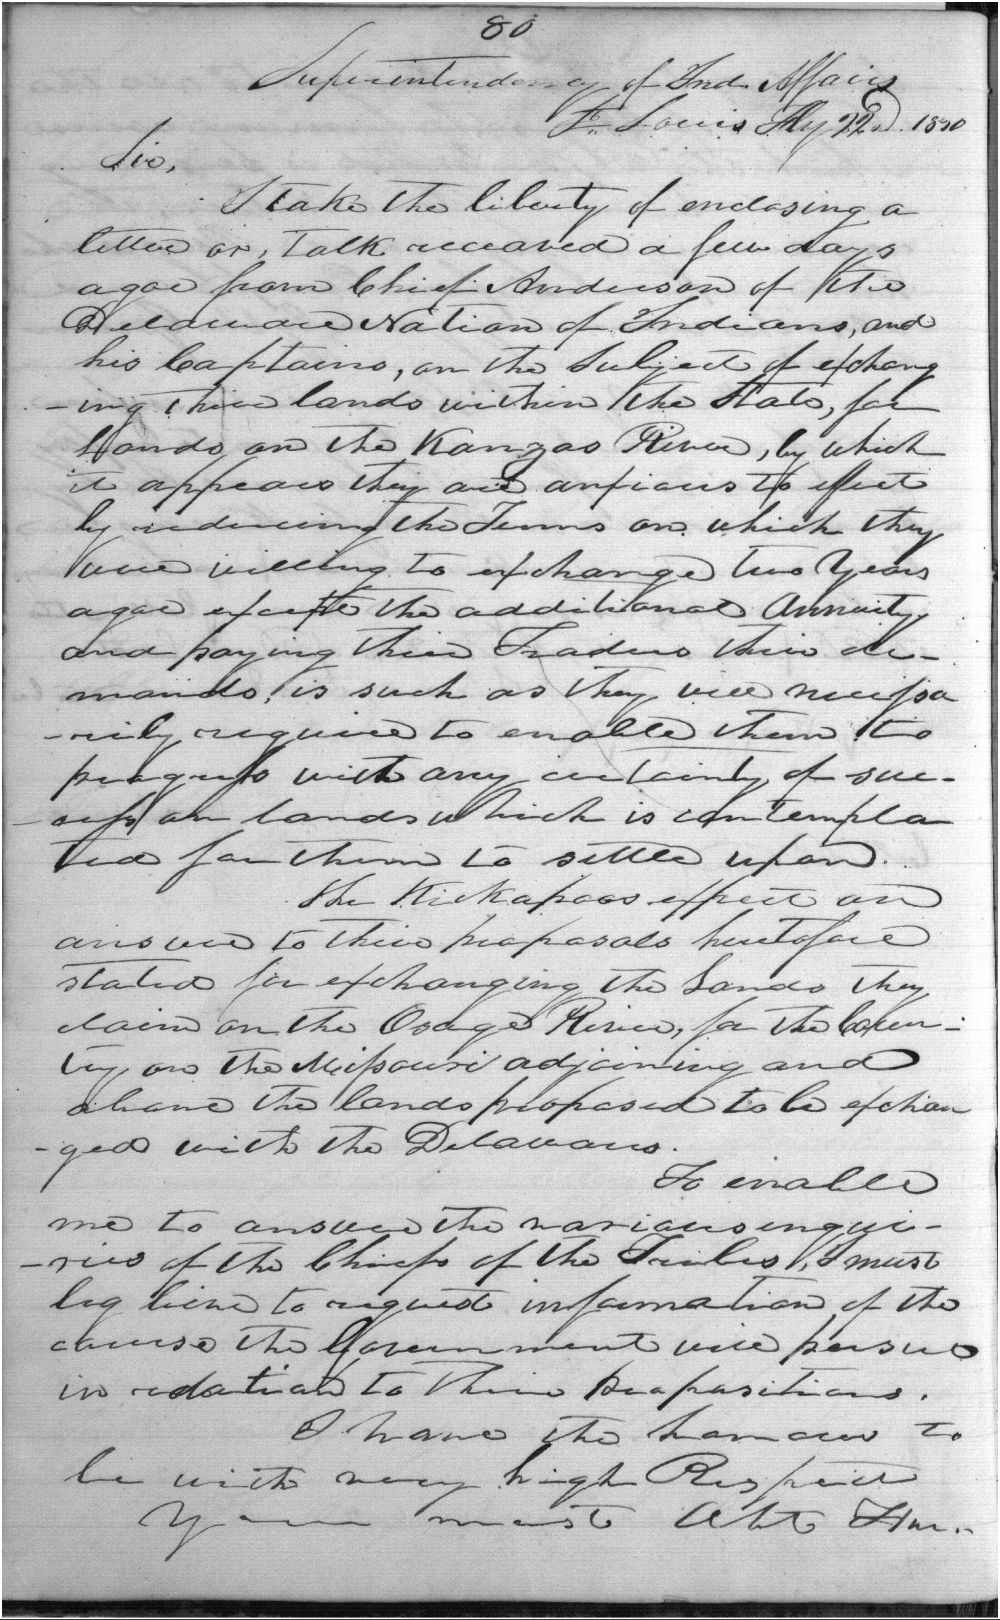 William Clark to John H. Eaton - 1